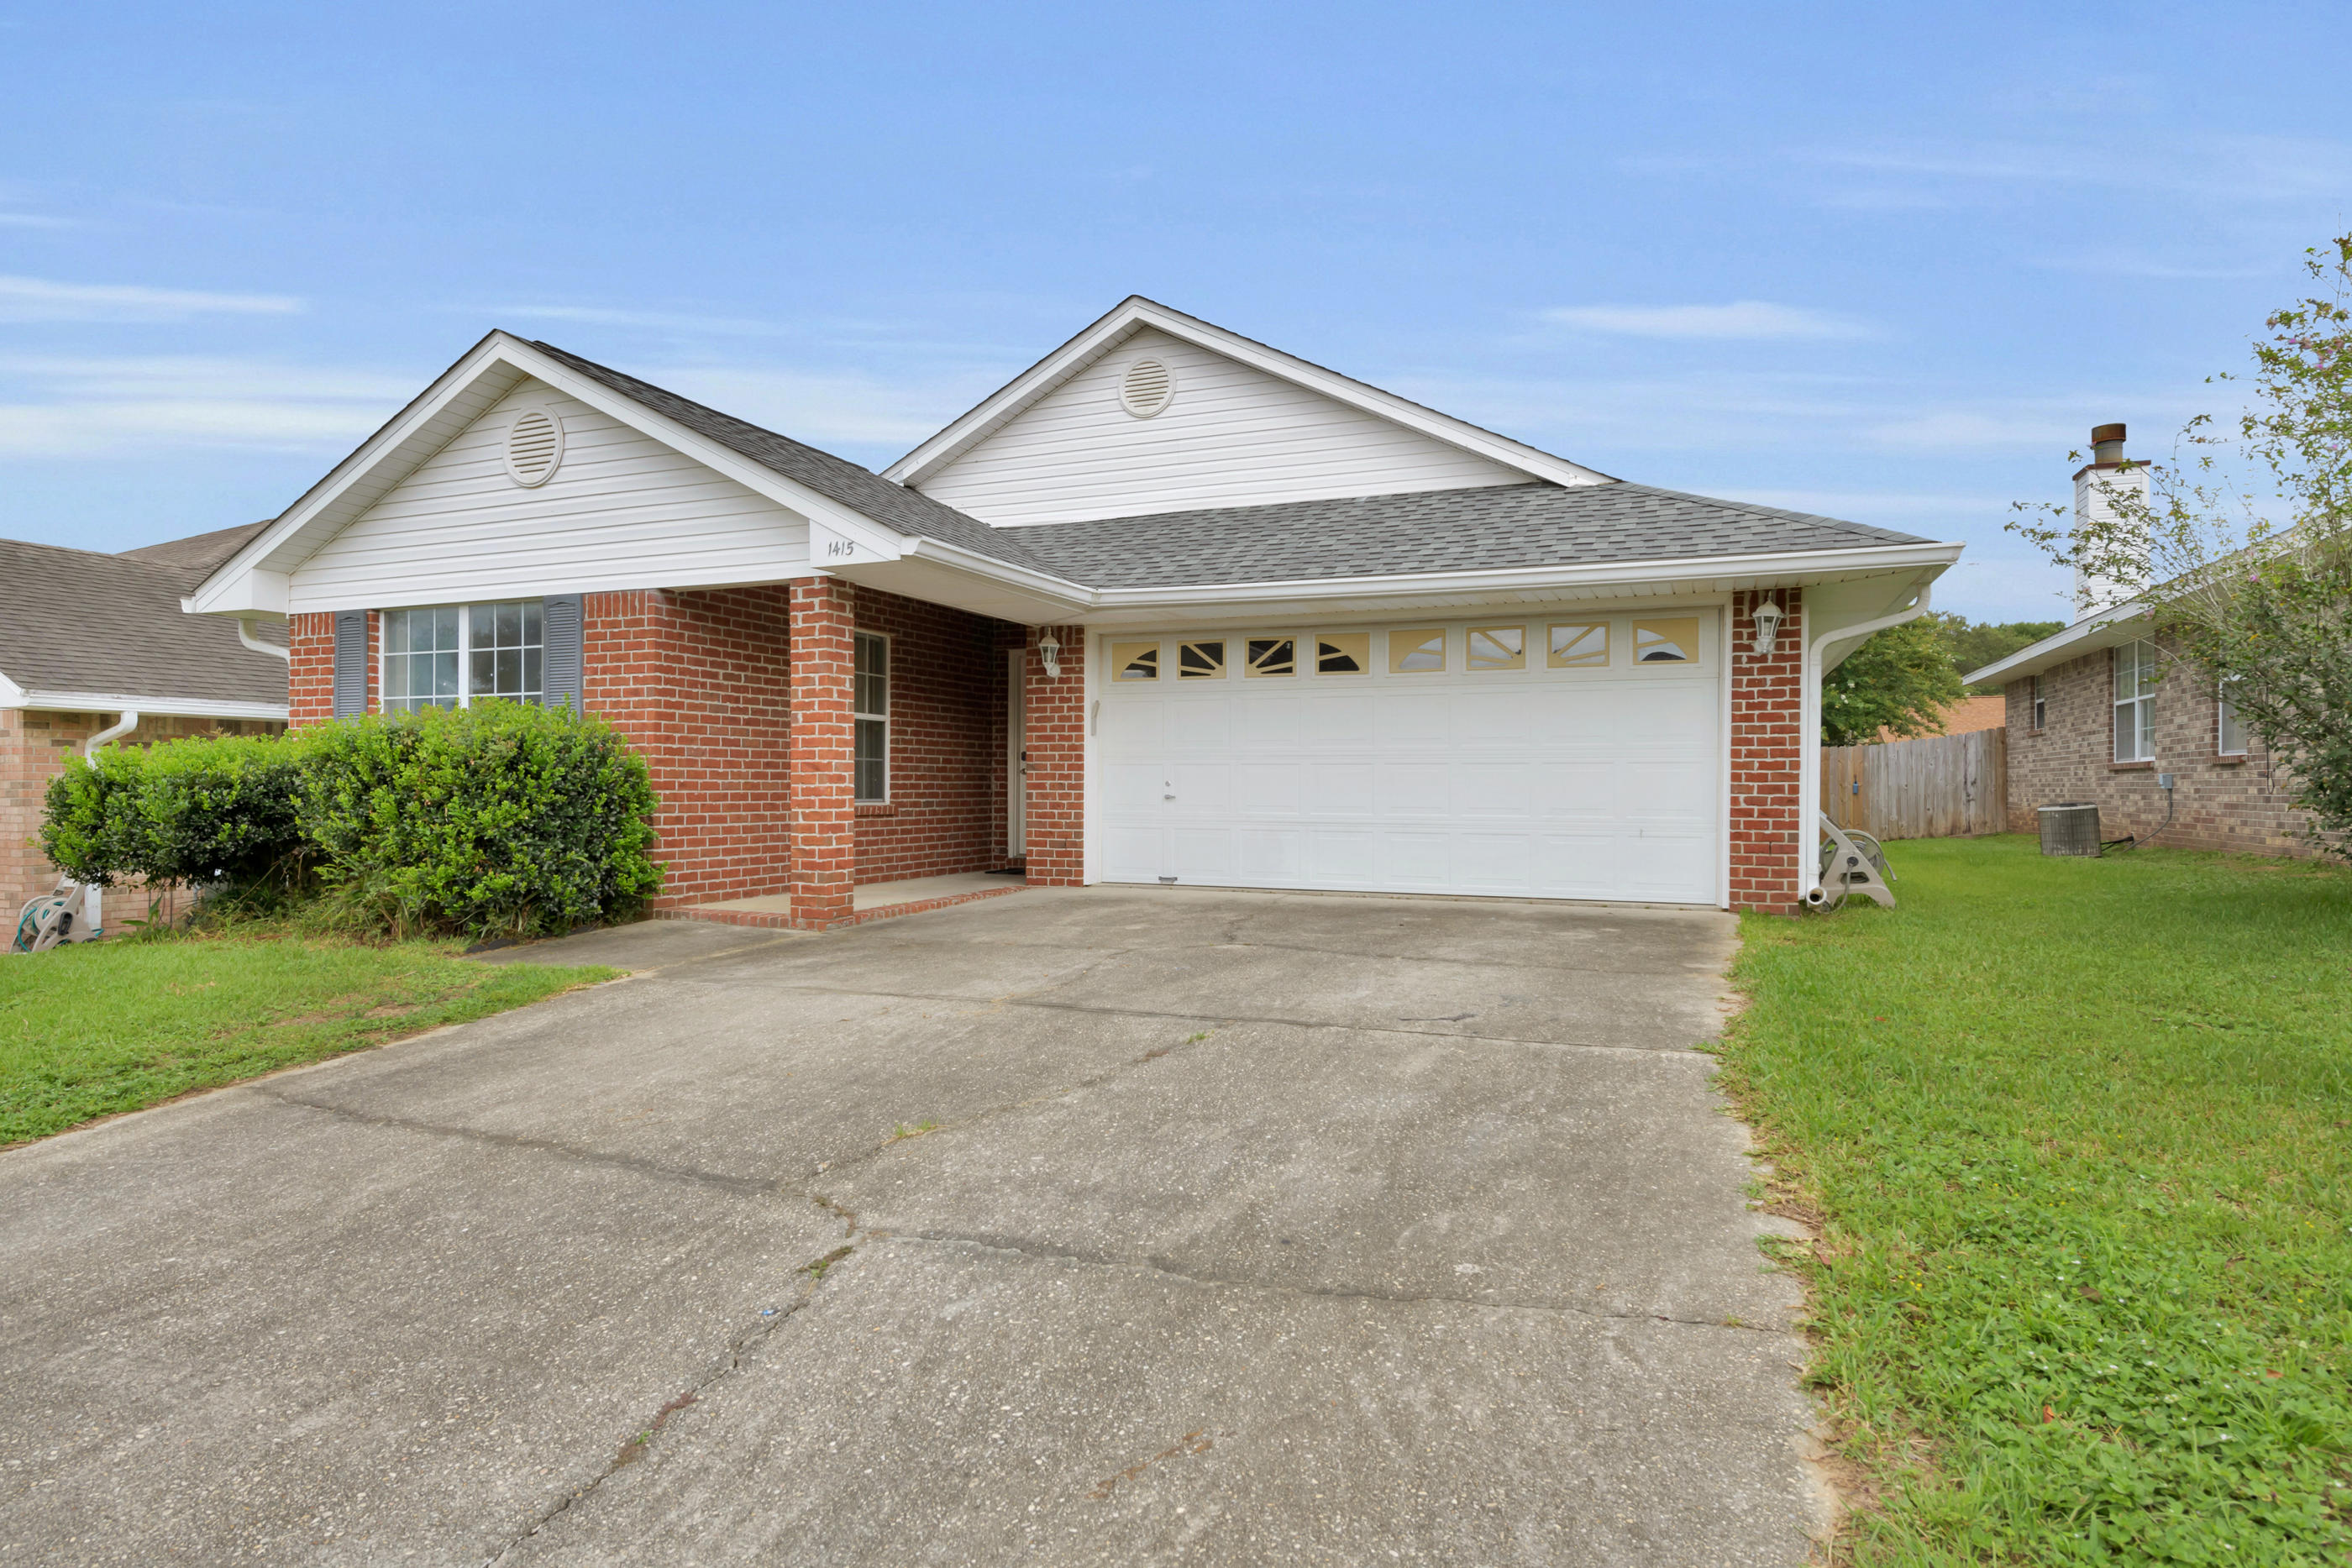 Photo of home for sale at 1415 Greystone, Pensacola FL